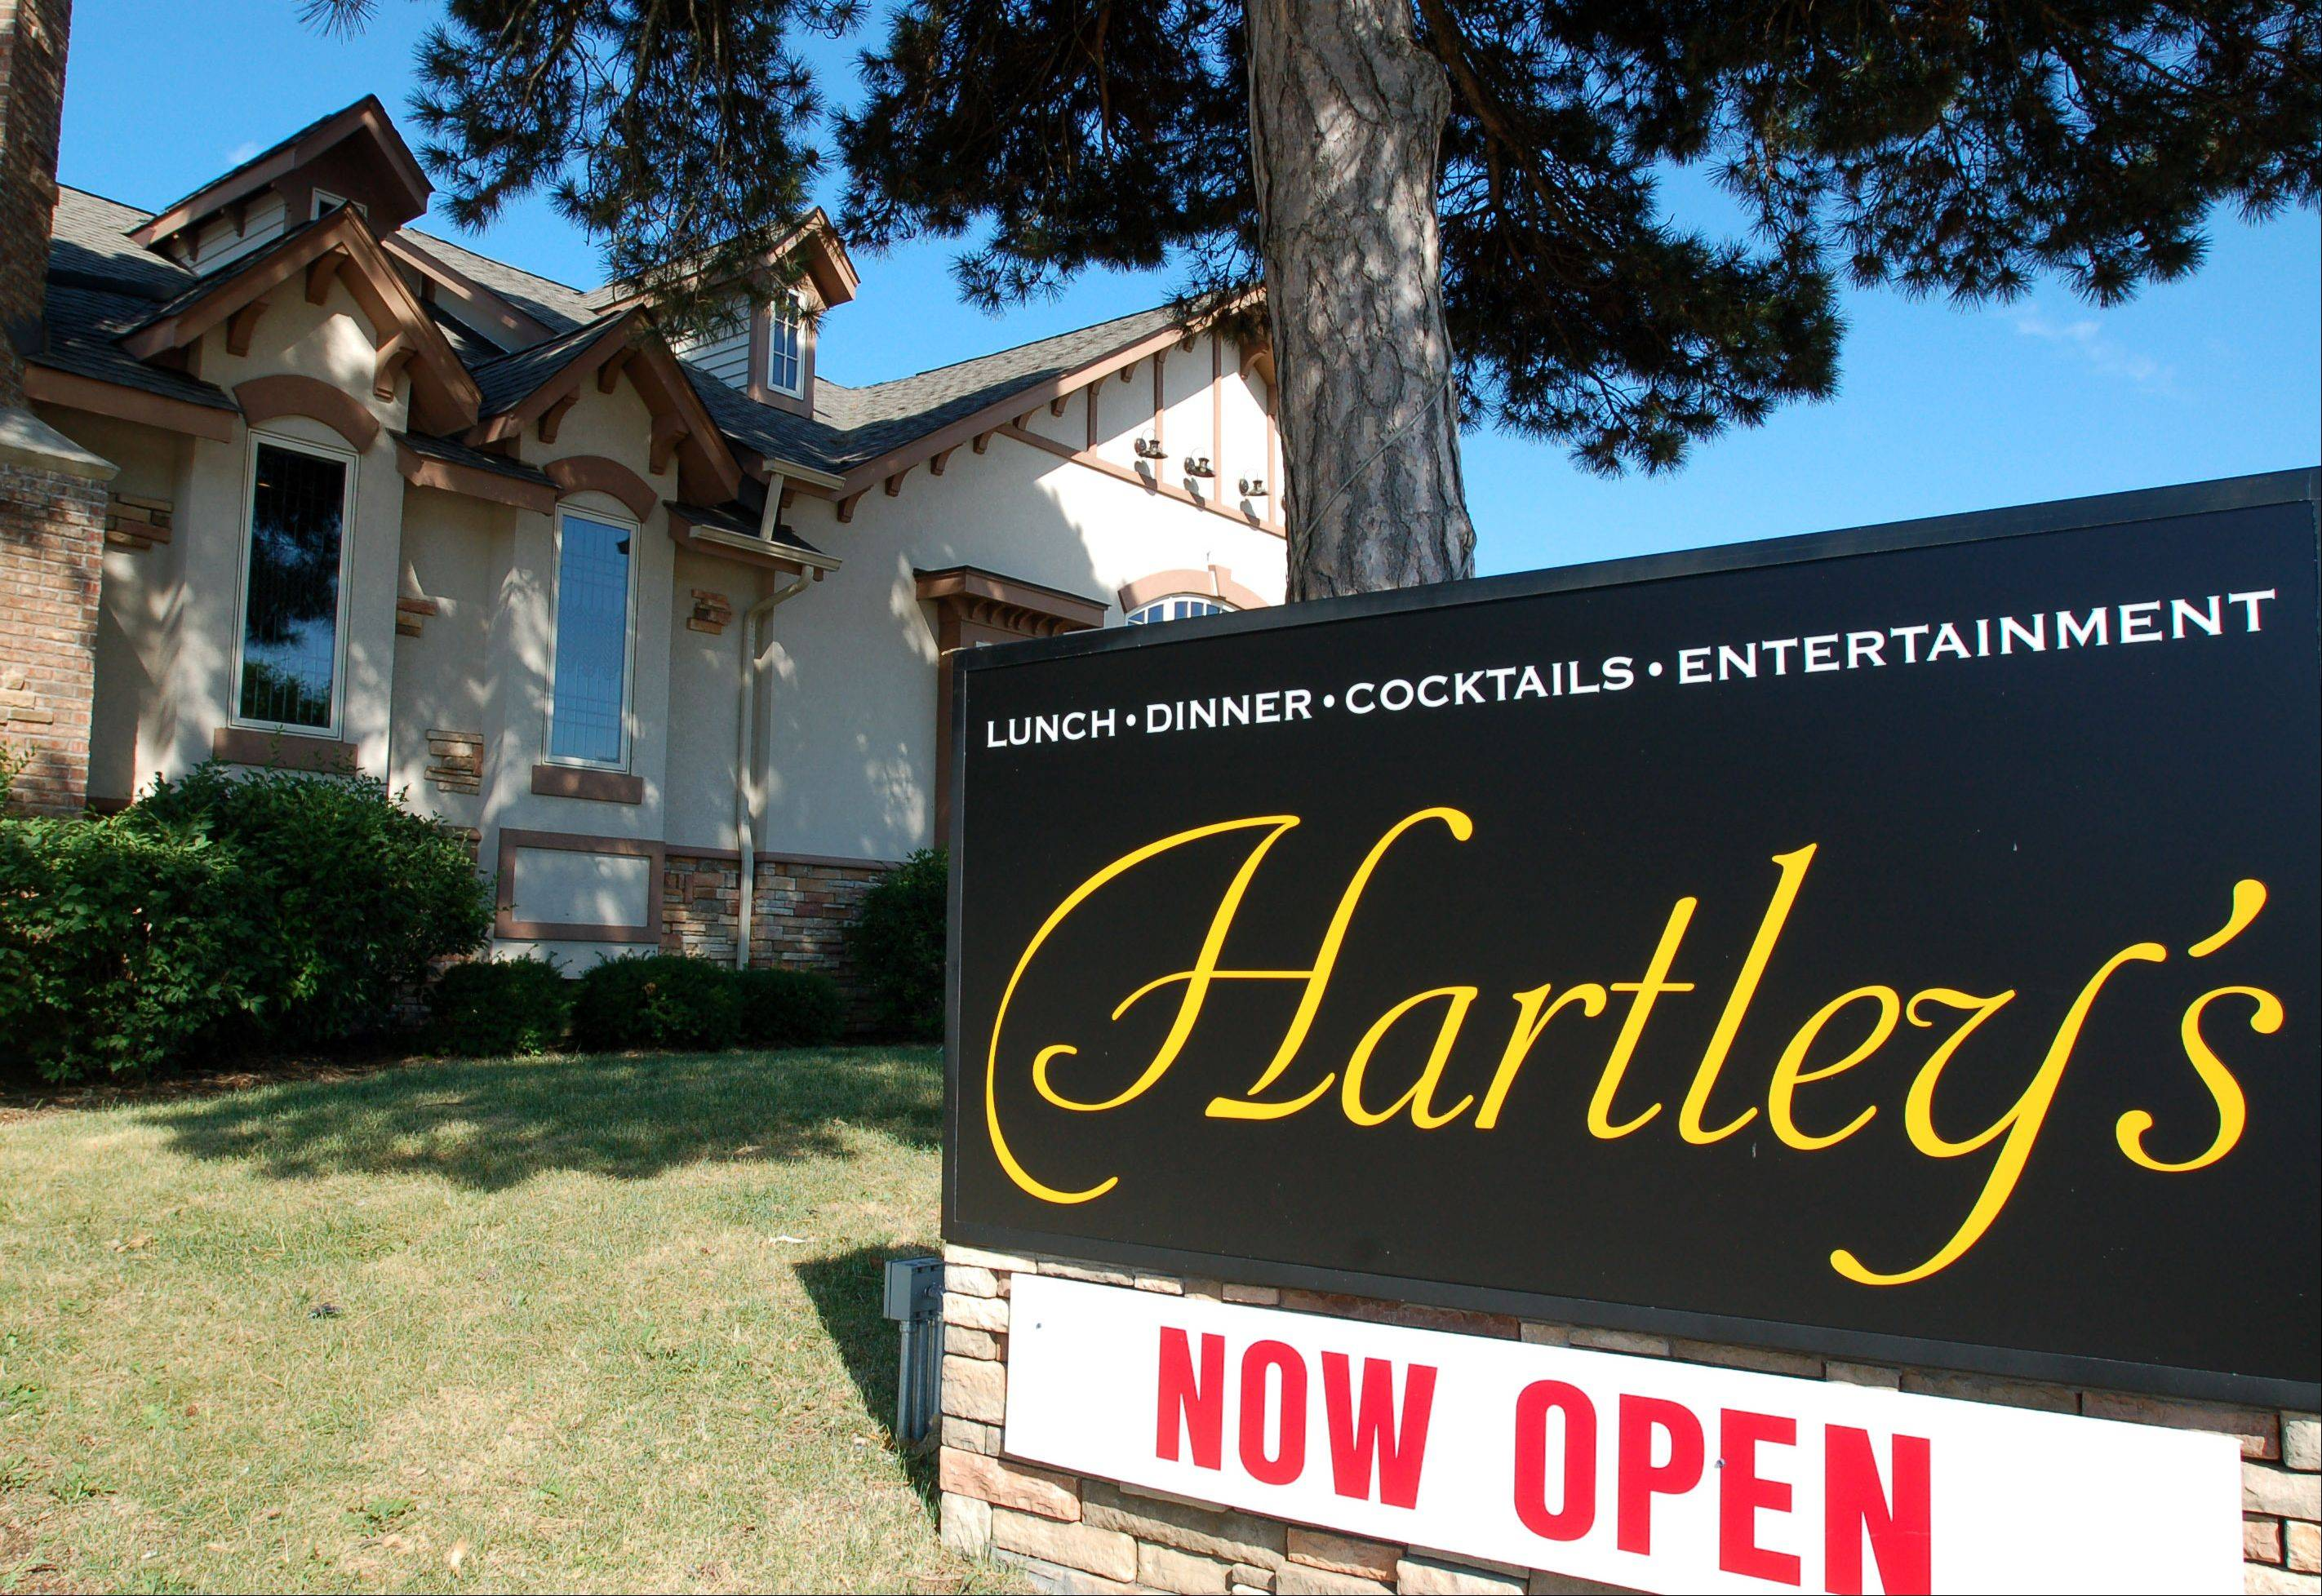 Hartley's opened in May in Crystal Lake.